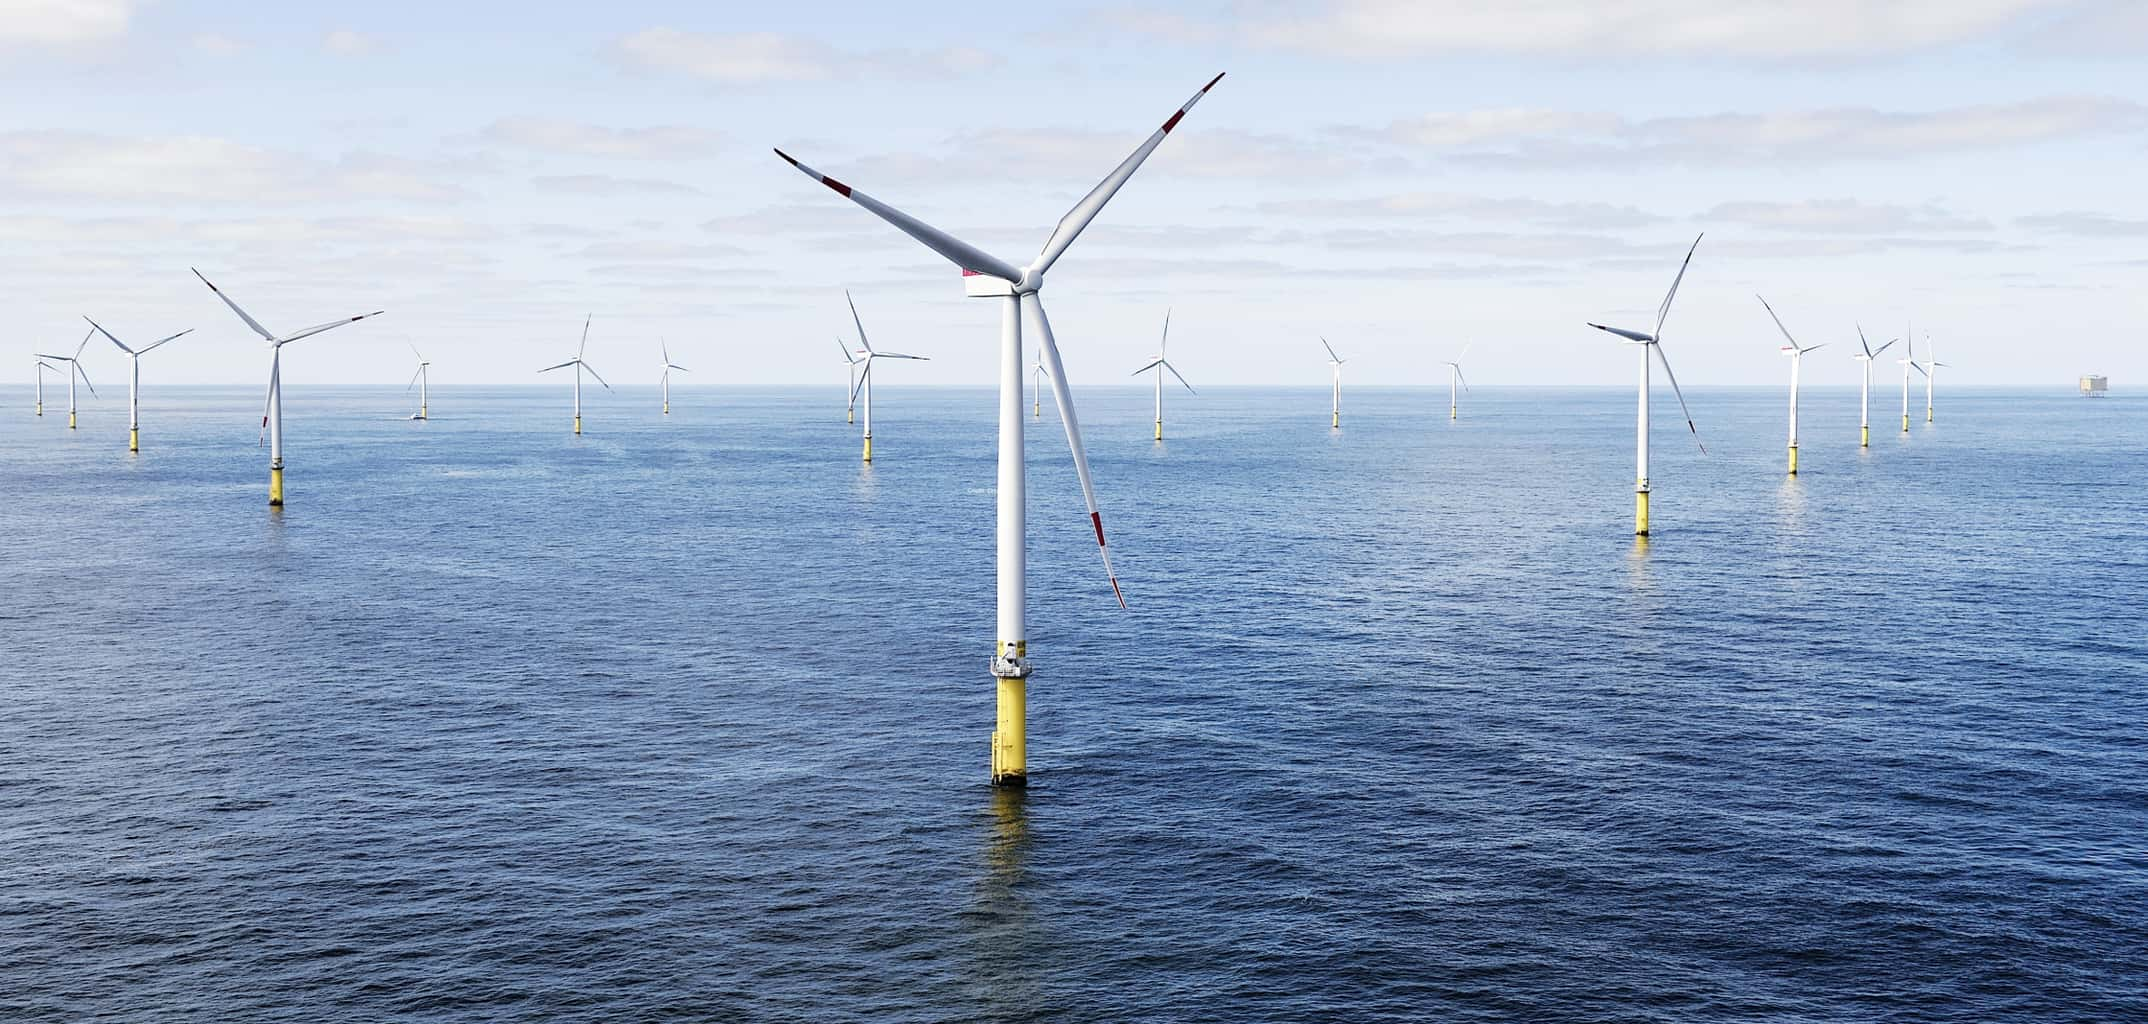 NOAA to Share Offshore Wind Data from Mid-Atlantic Waters